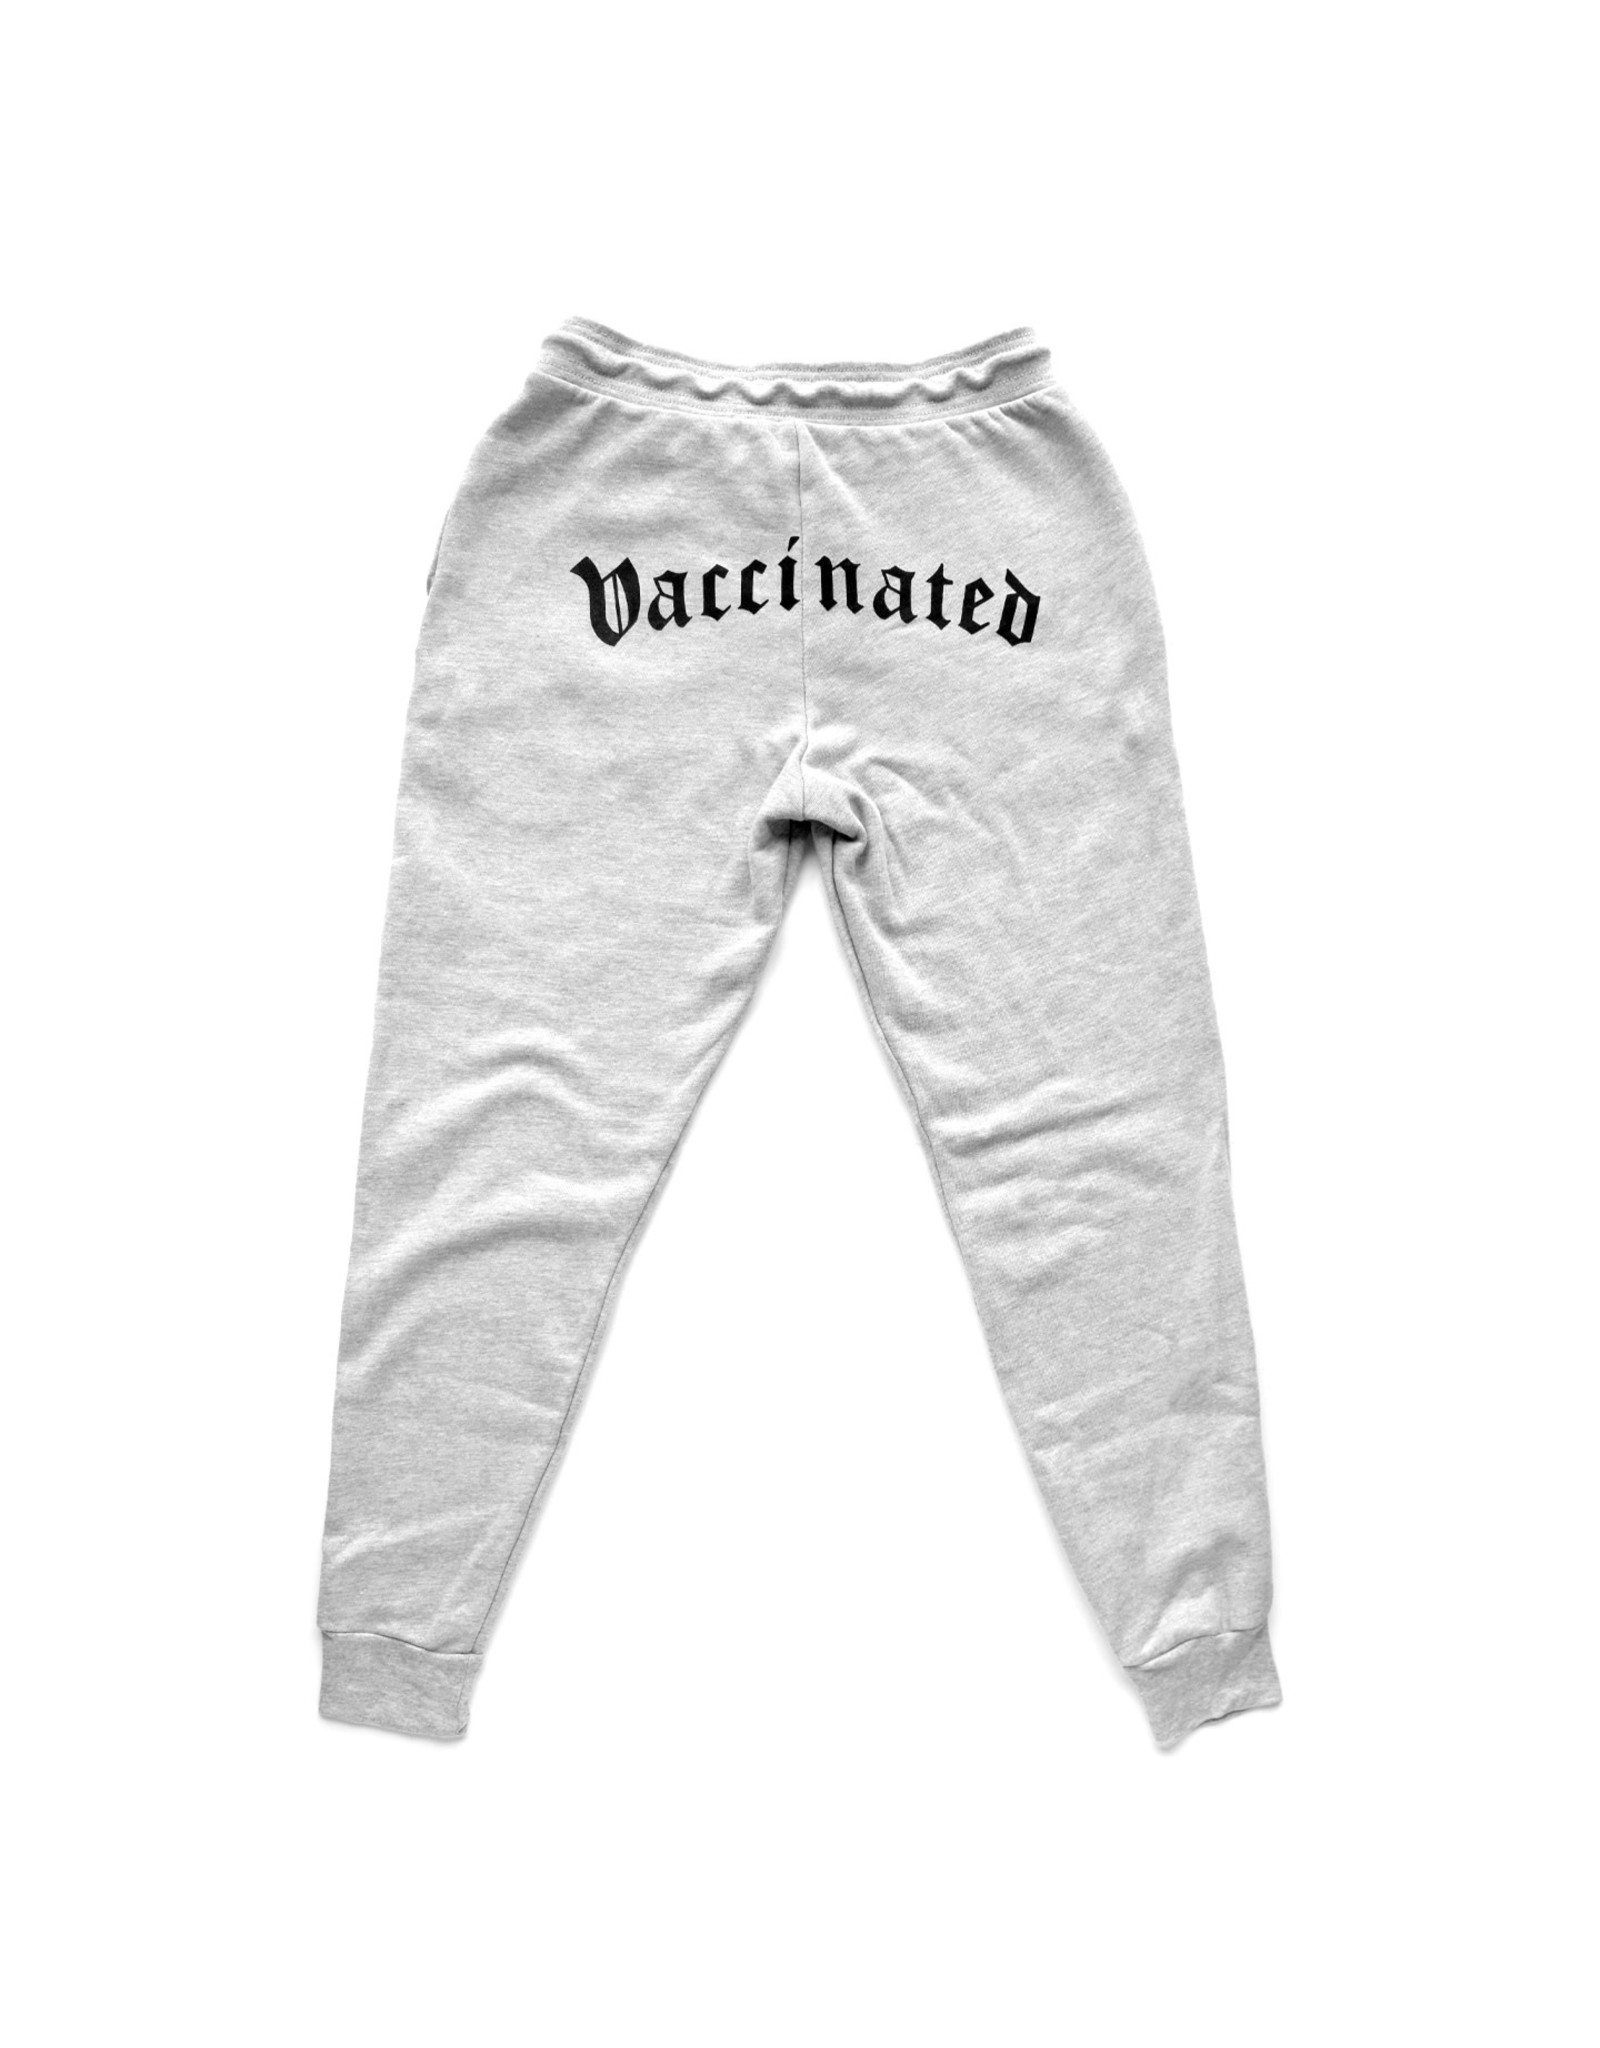 Vaccinated Jogger